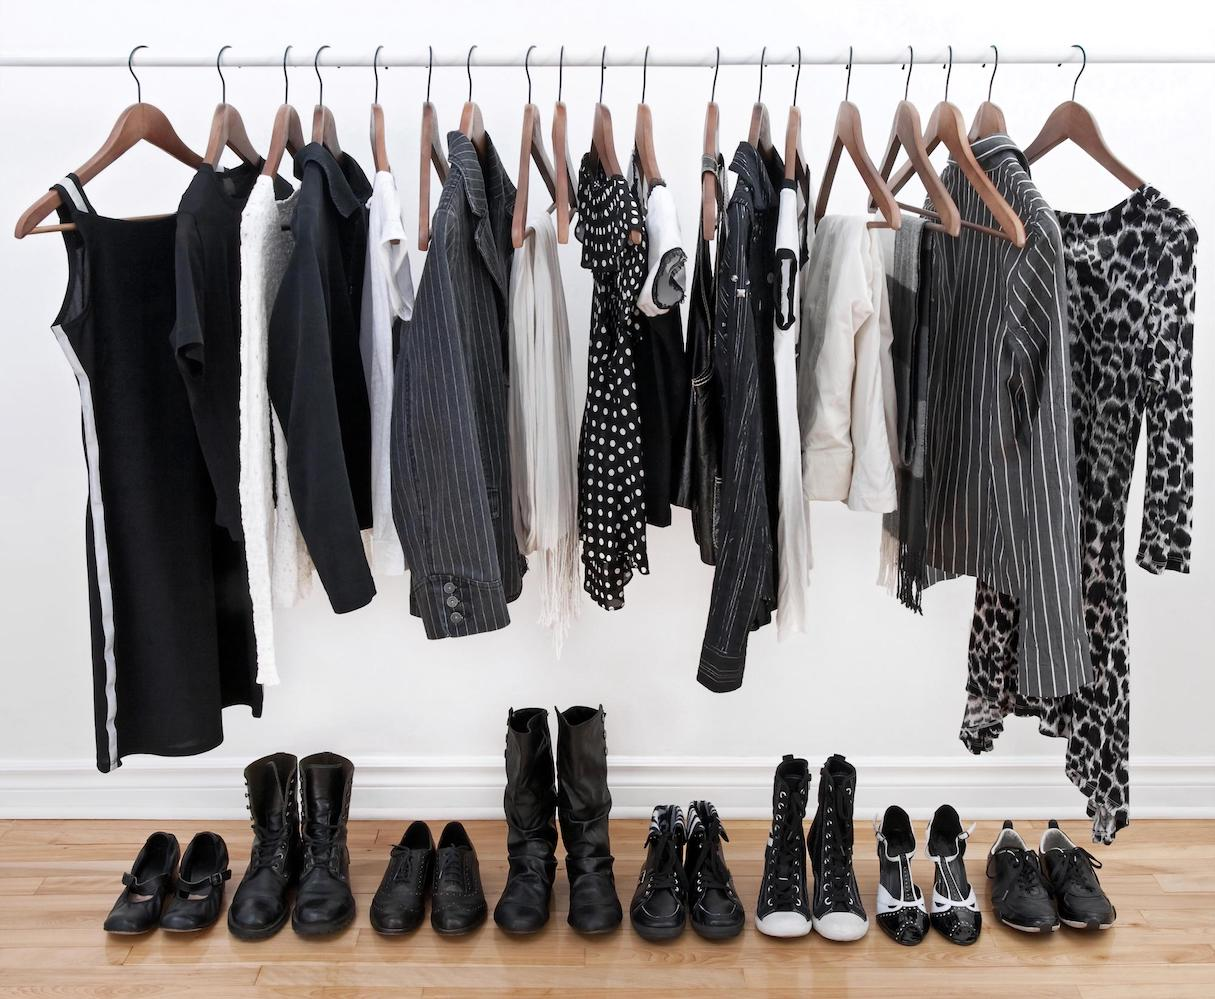 An assortment of black and white clothes hanging on a rack. Black and white shoes neatly lined up underneath the rack.